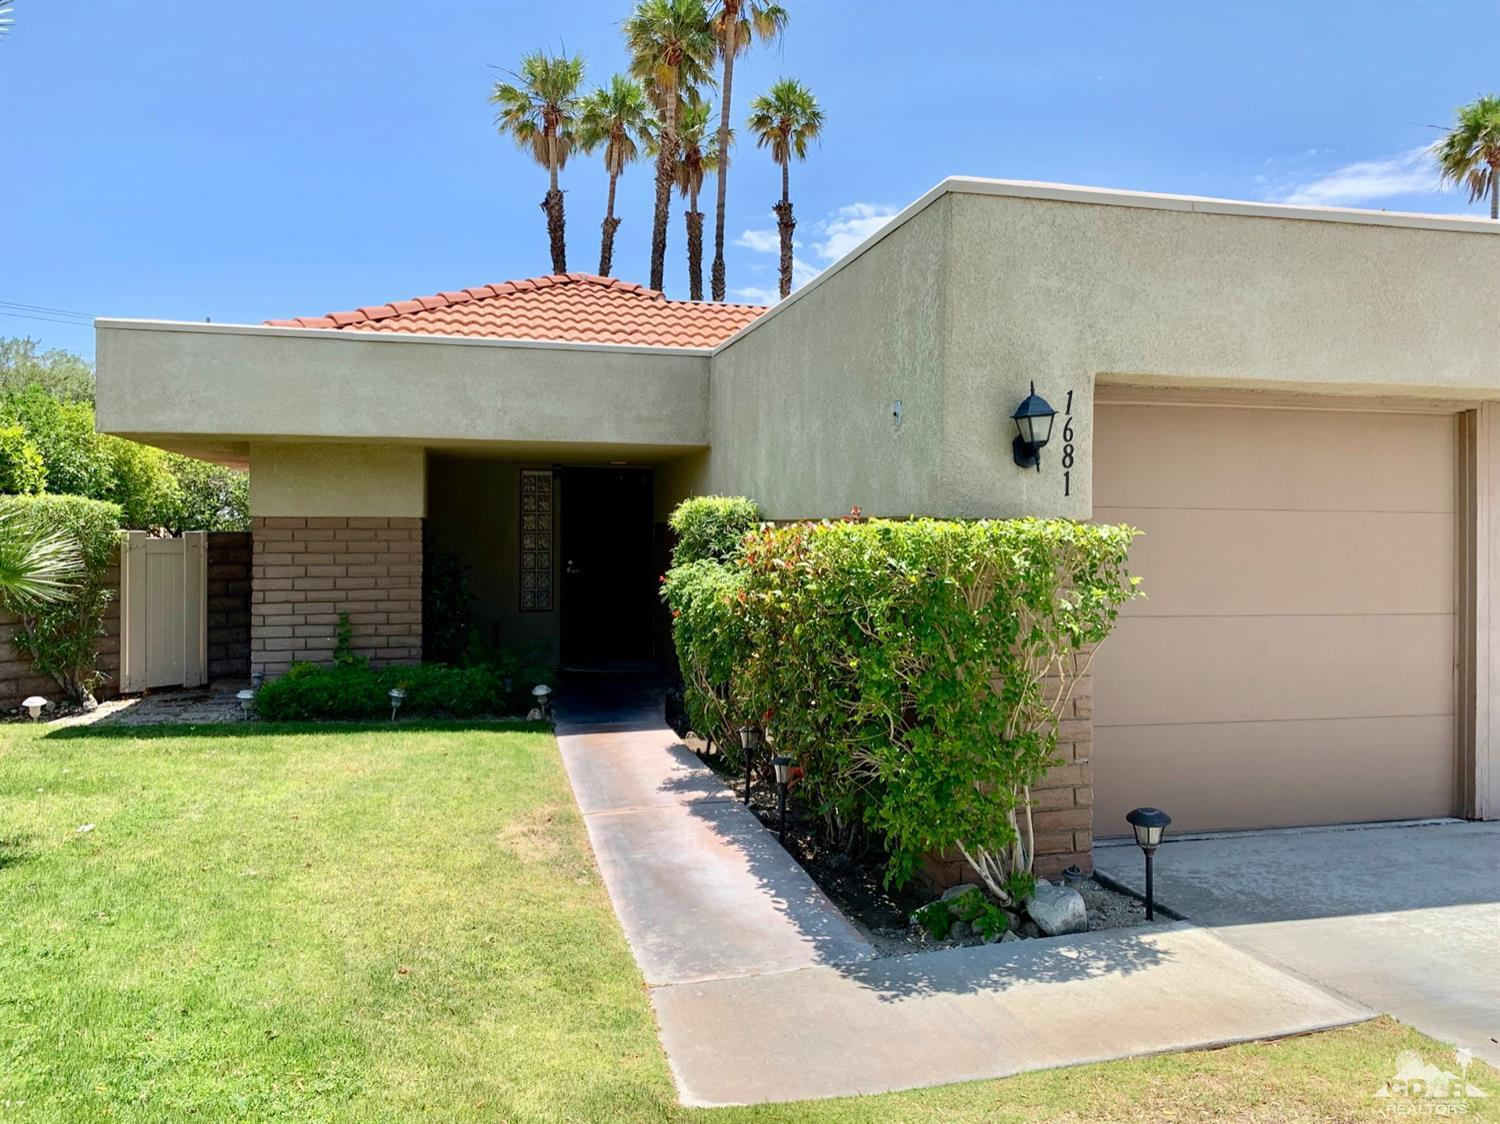 1681 Sunflower Court S, Palm Springs, California 92262, 3 Bedrooms Bedrooms, ,1 BathroomBathrooms,Residential,Sold,1681 Sunflower Court S,219015543